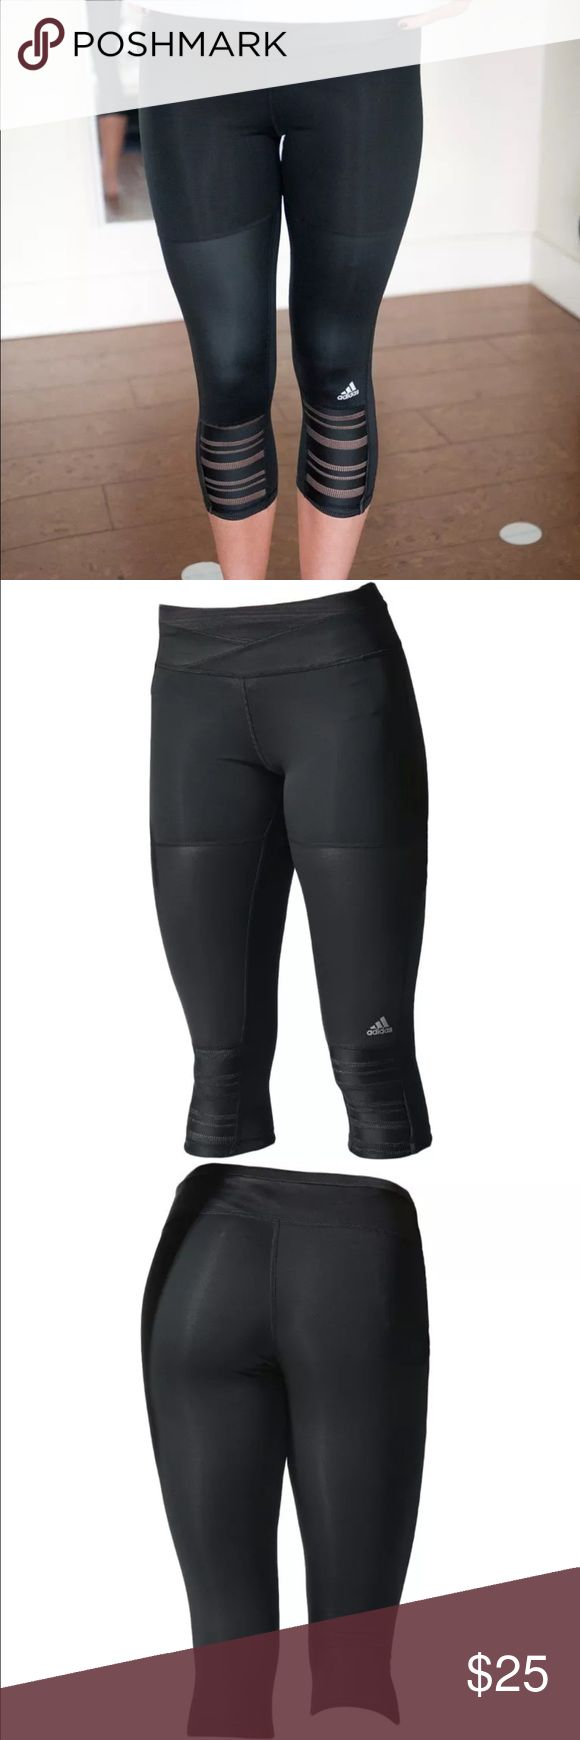 Adidas supernova workout pants Womens Brand New size  Small &Medium Adidas supernova tight.  Adidas performance :Climacool ,formation, reflective, and fitted. PRICE FIRM Adidas Pants Leggings